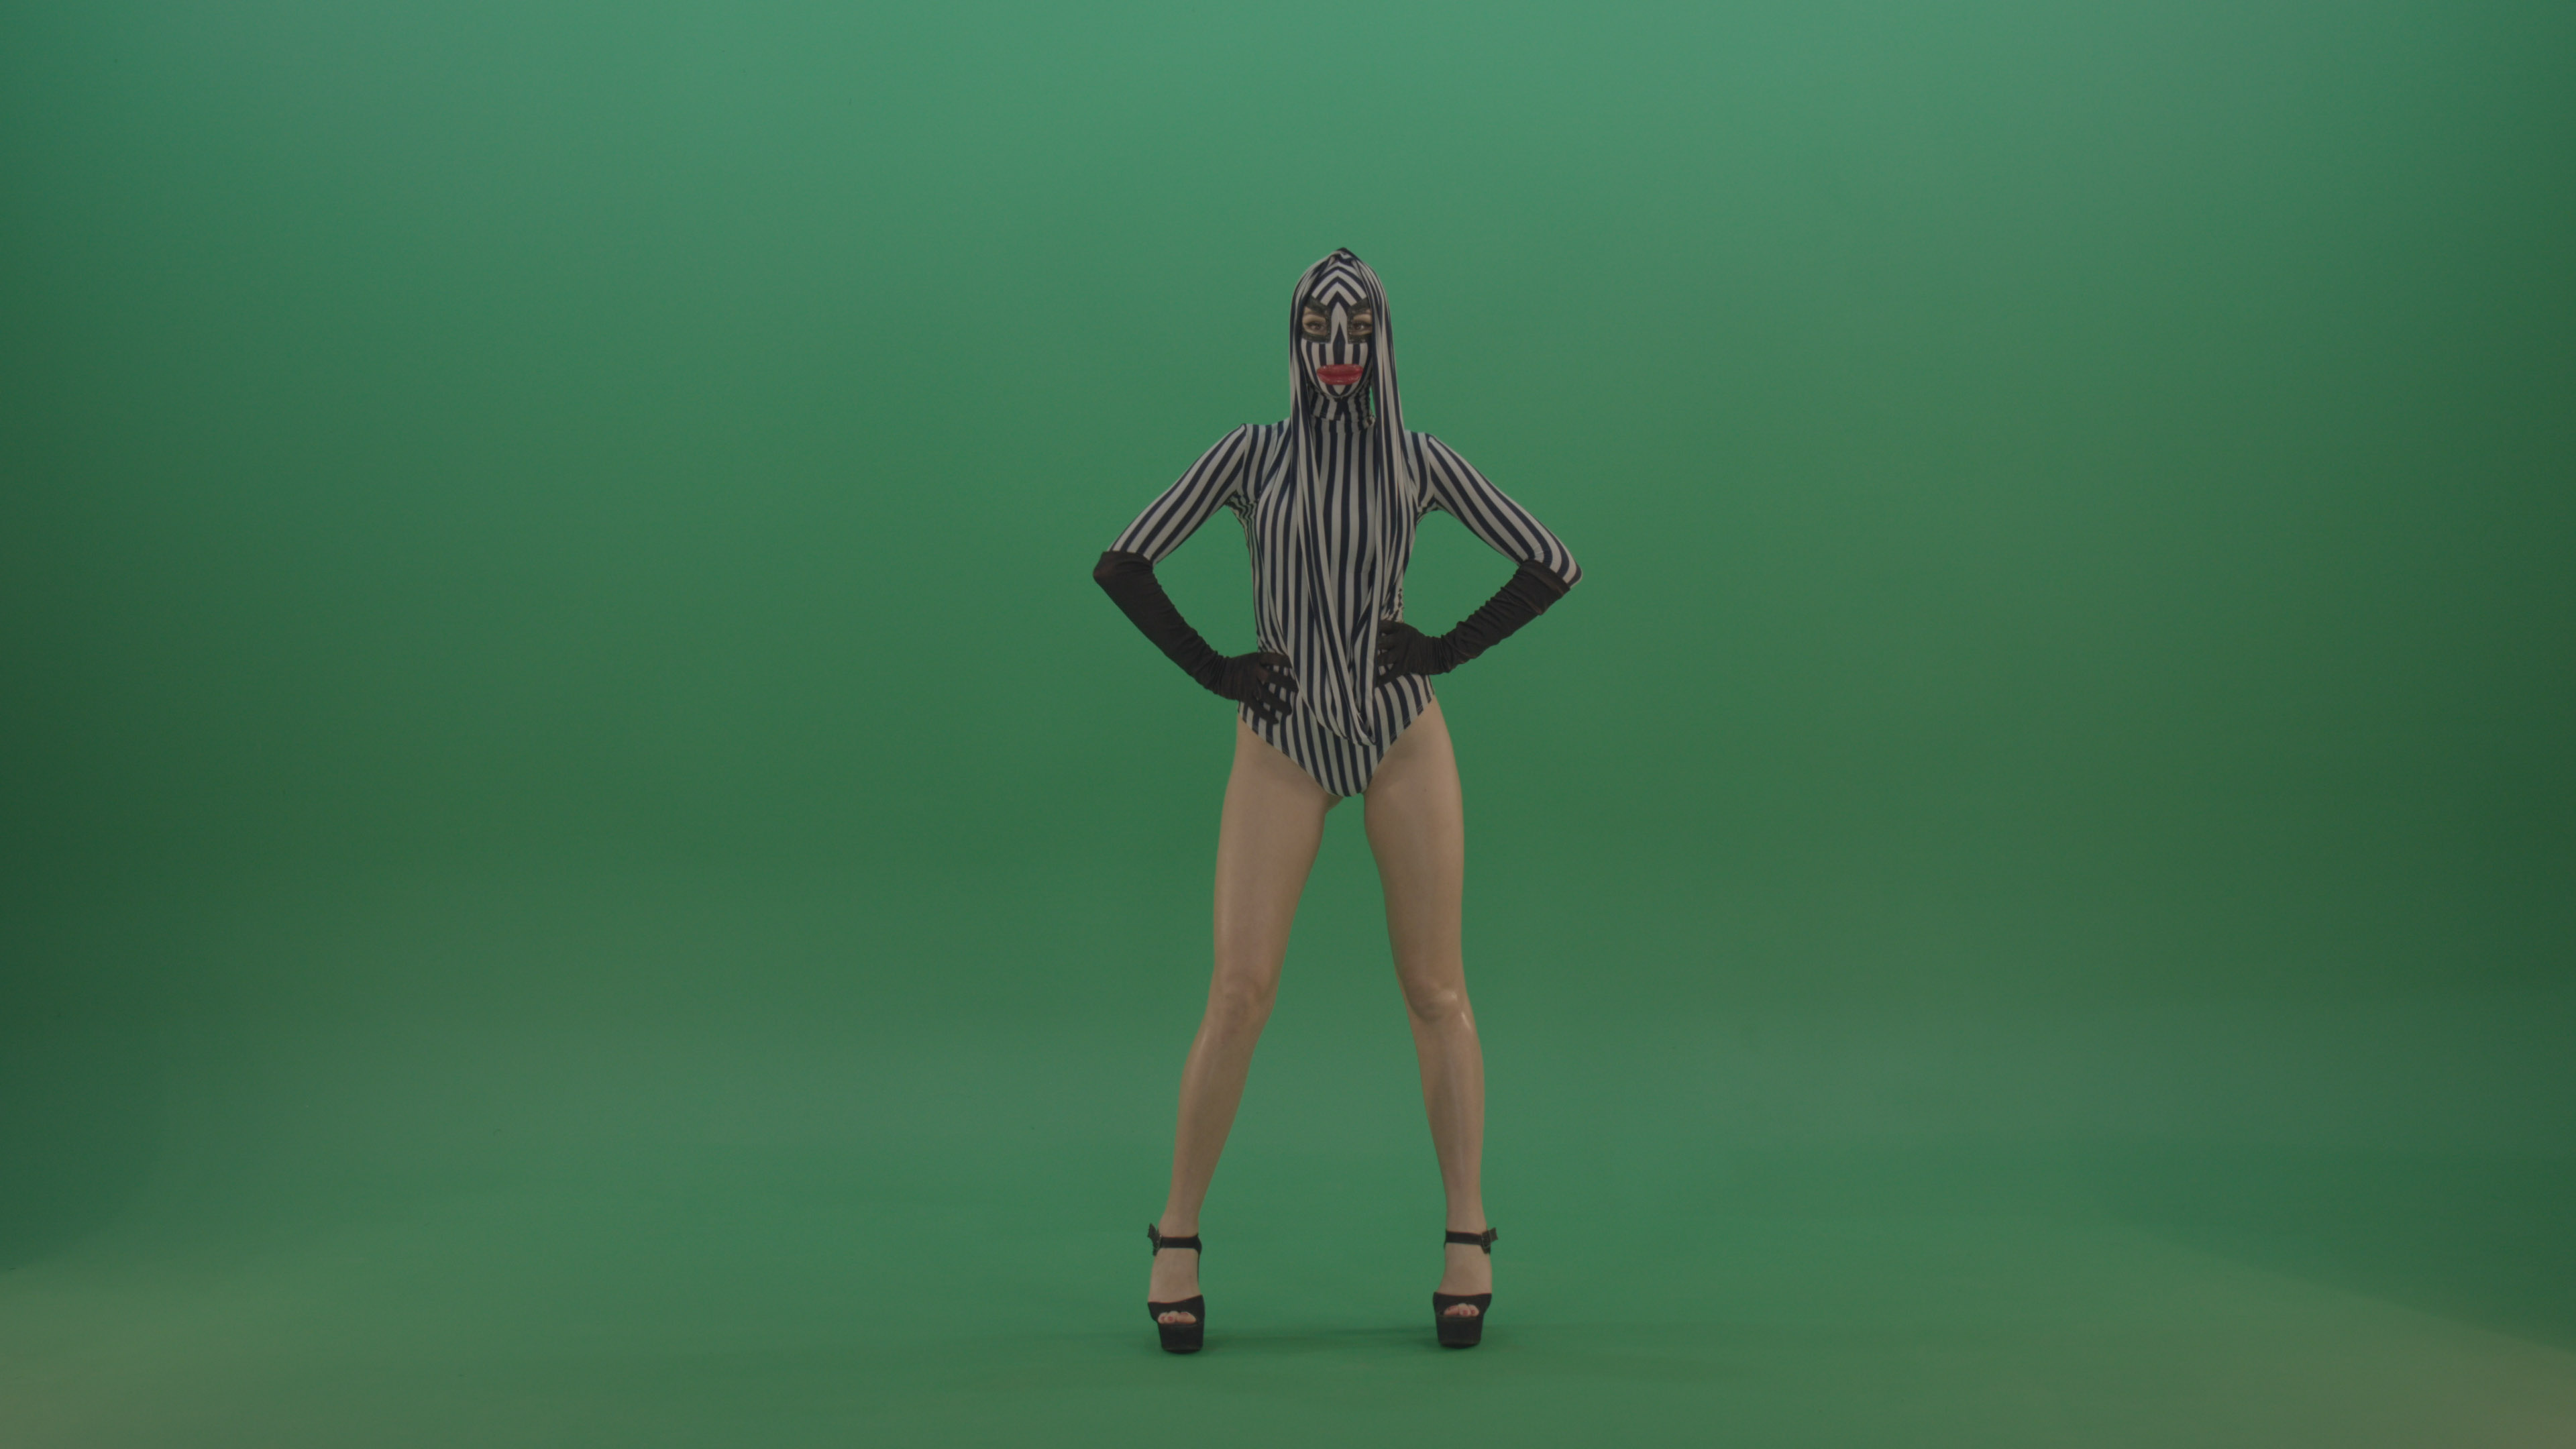 Green Screen Video FOotage Dancing Girl Go Go Dance